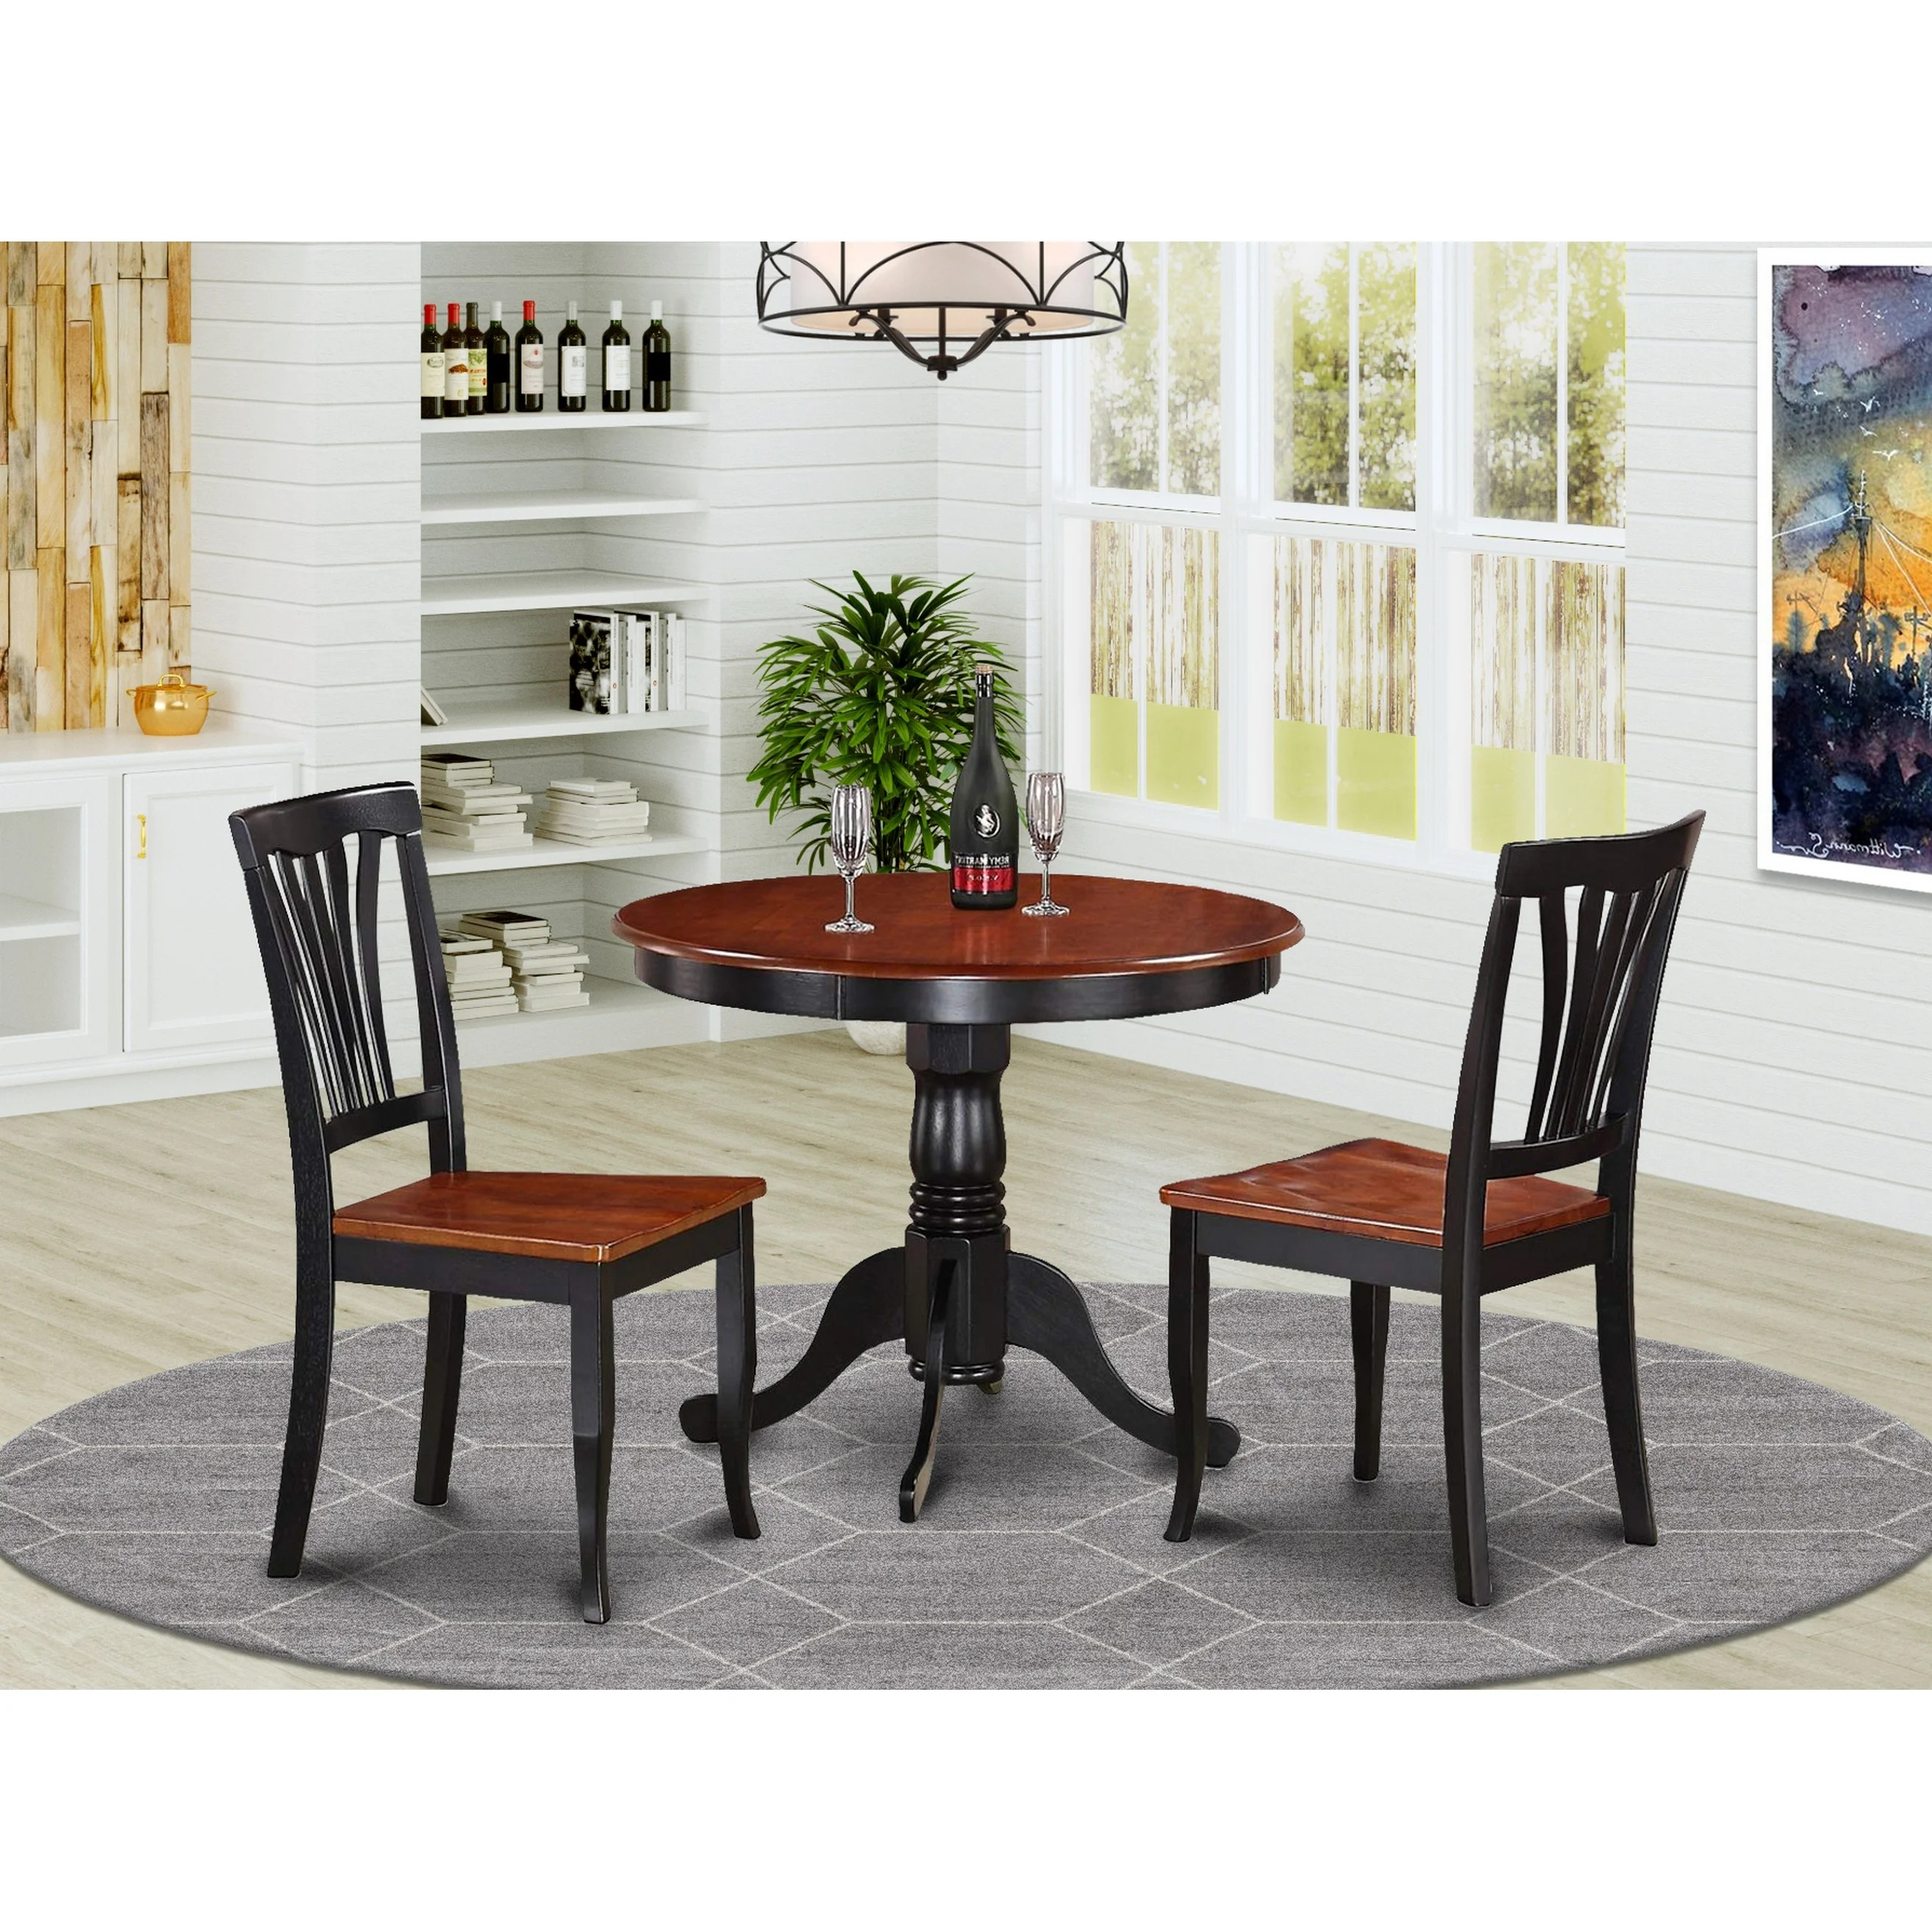 Shop 3 Piece Kitchen Nook Dining Set Small Kitchen Table And 2 Kitchen Chairs Overstock 10200001